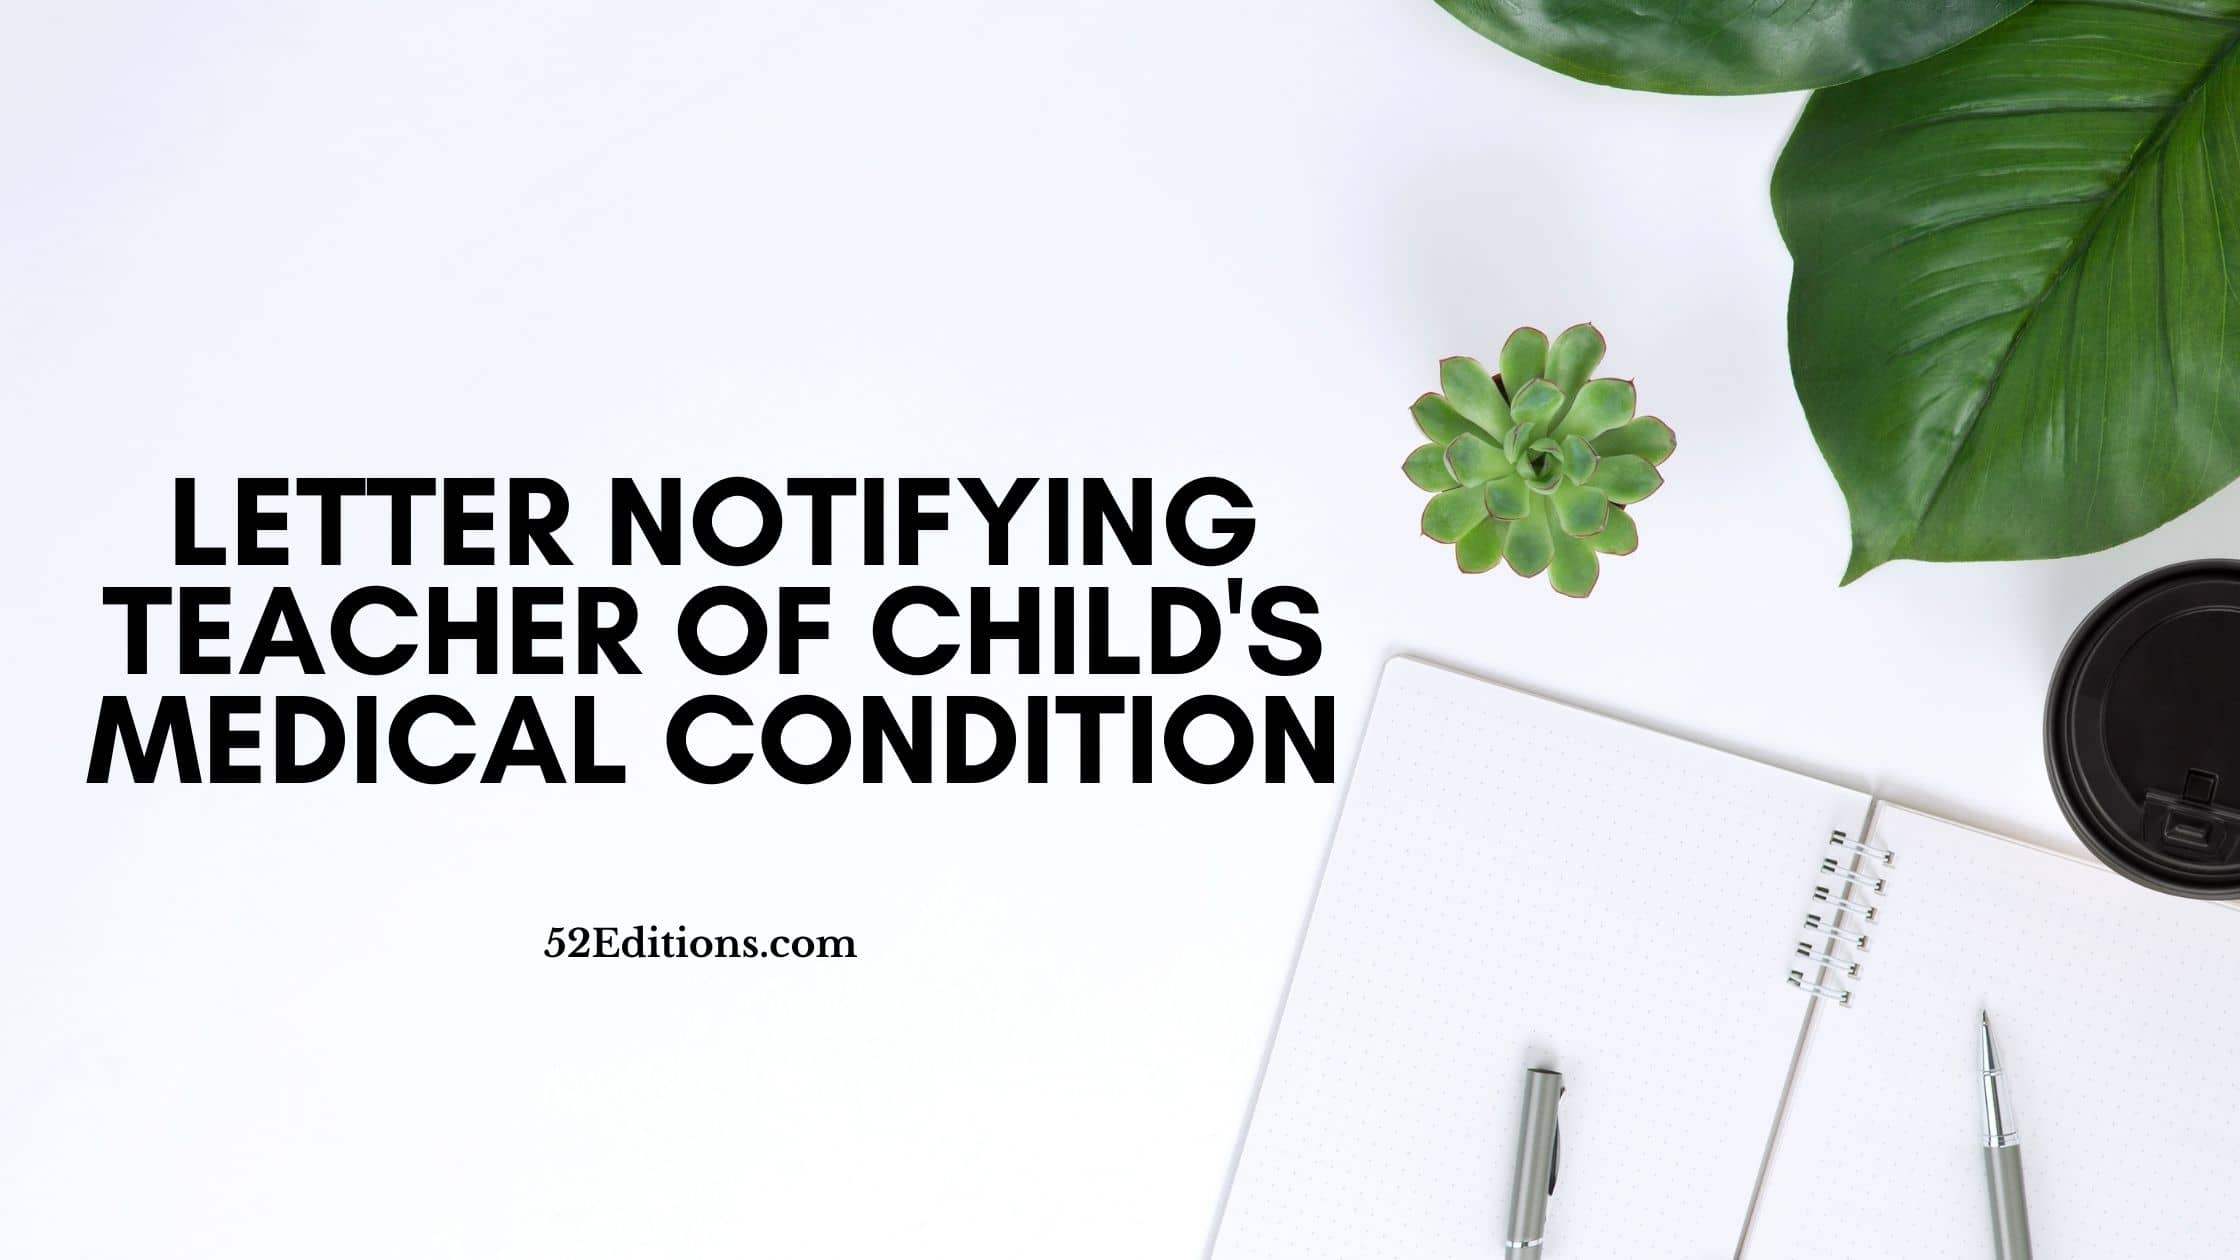 Letter Notifying Teacher Of Child's Medical Condition